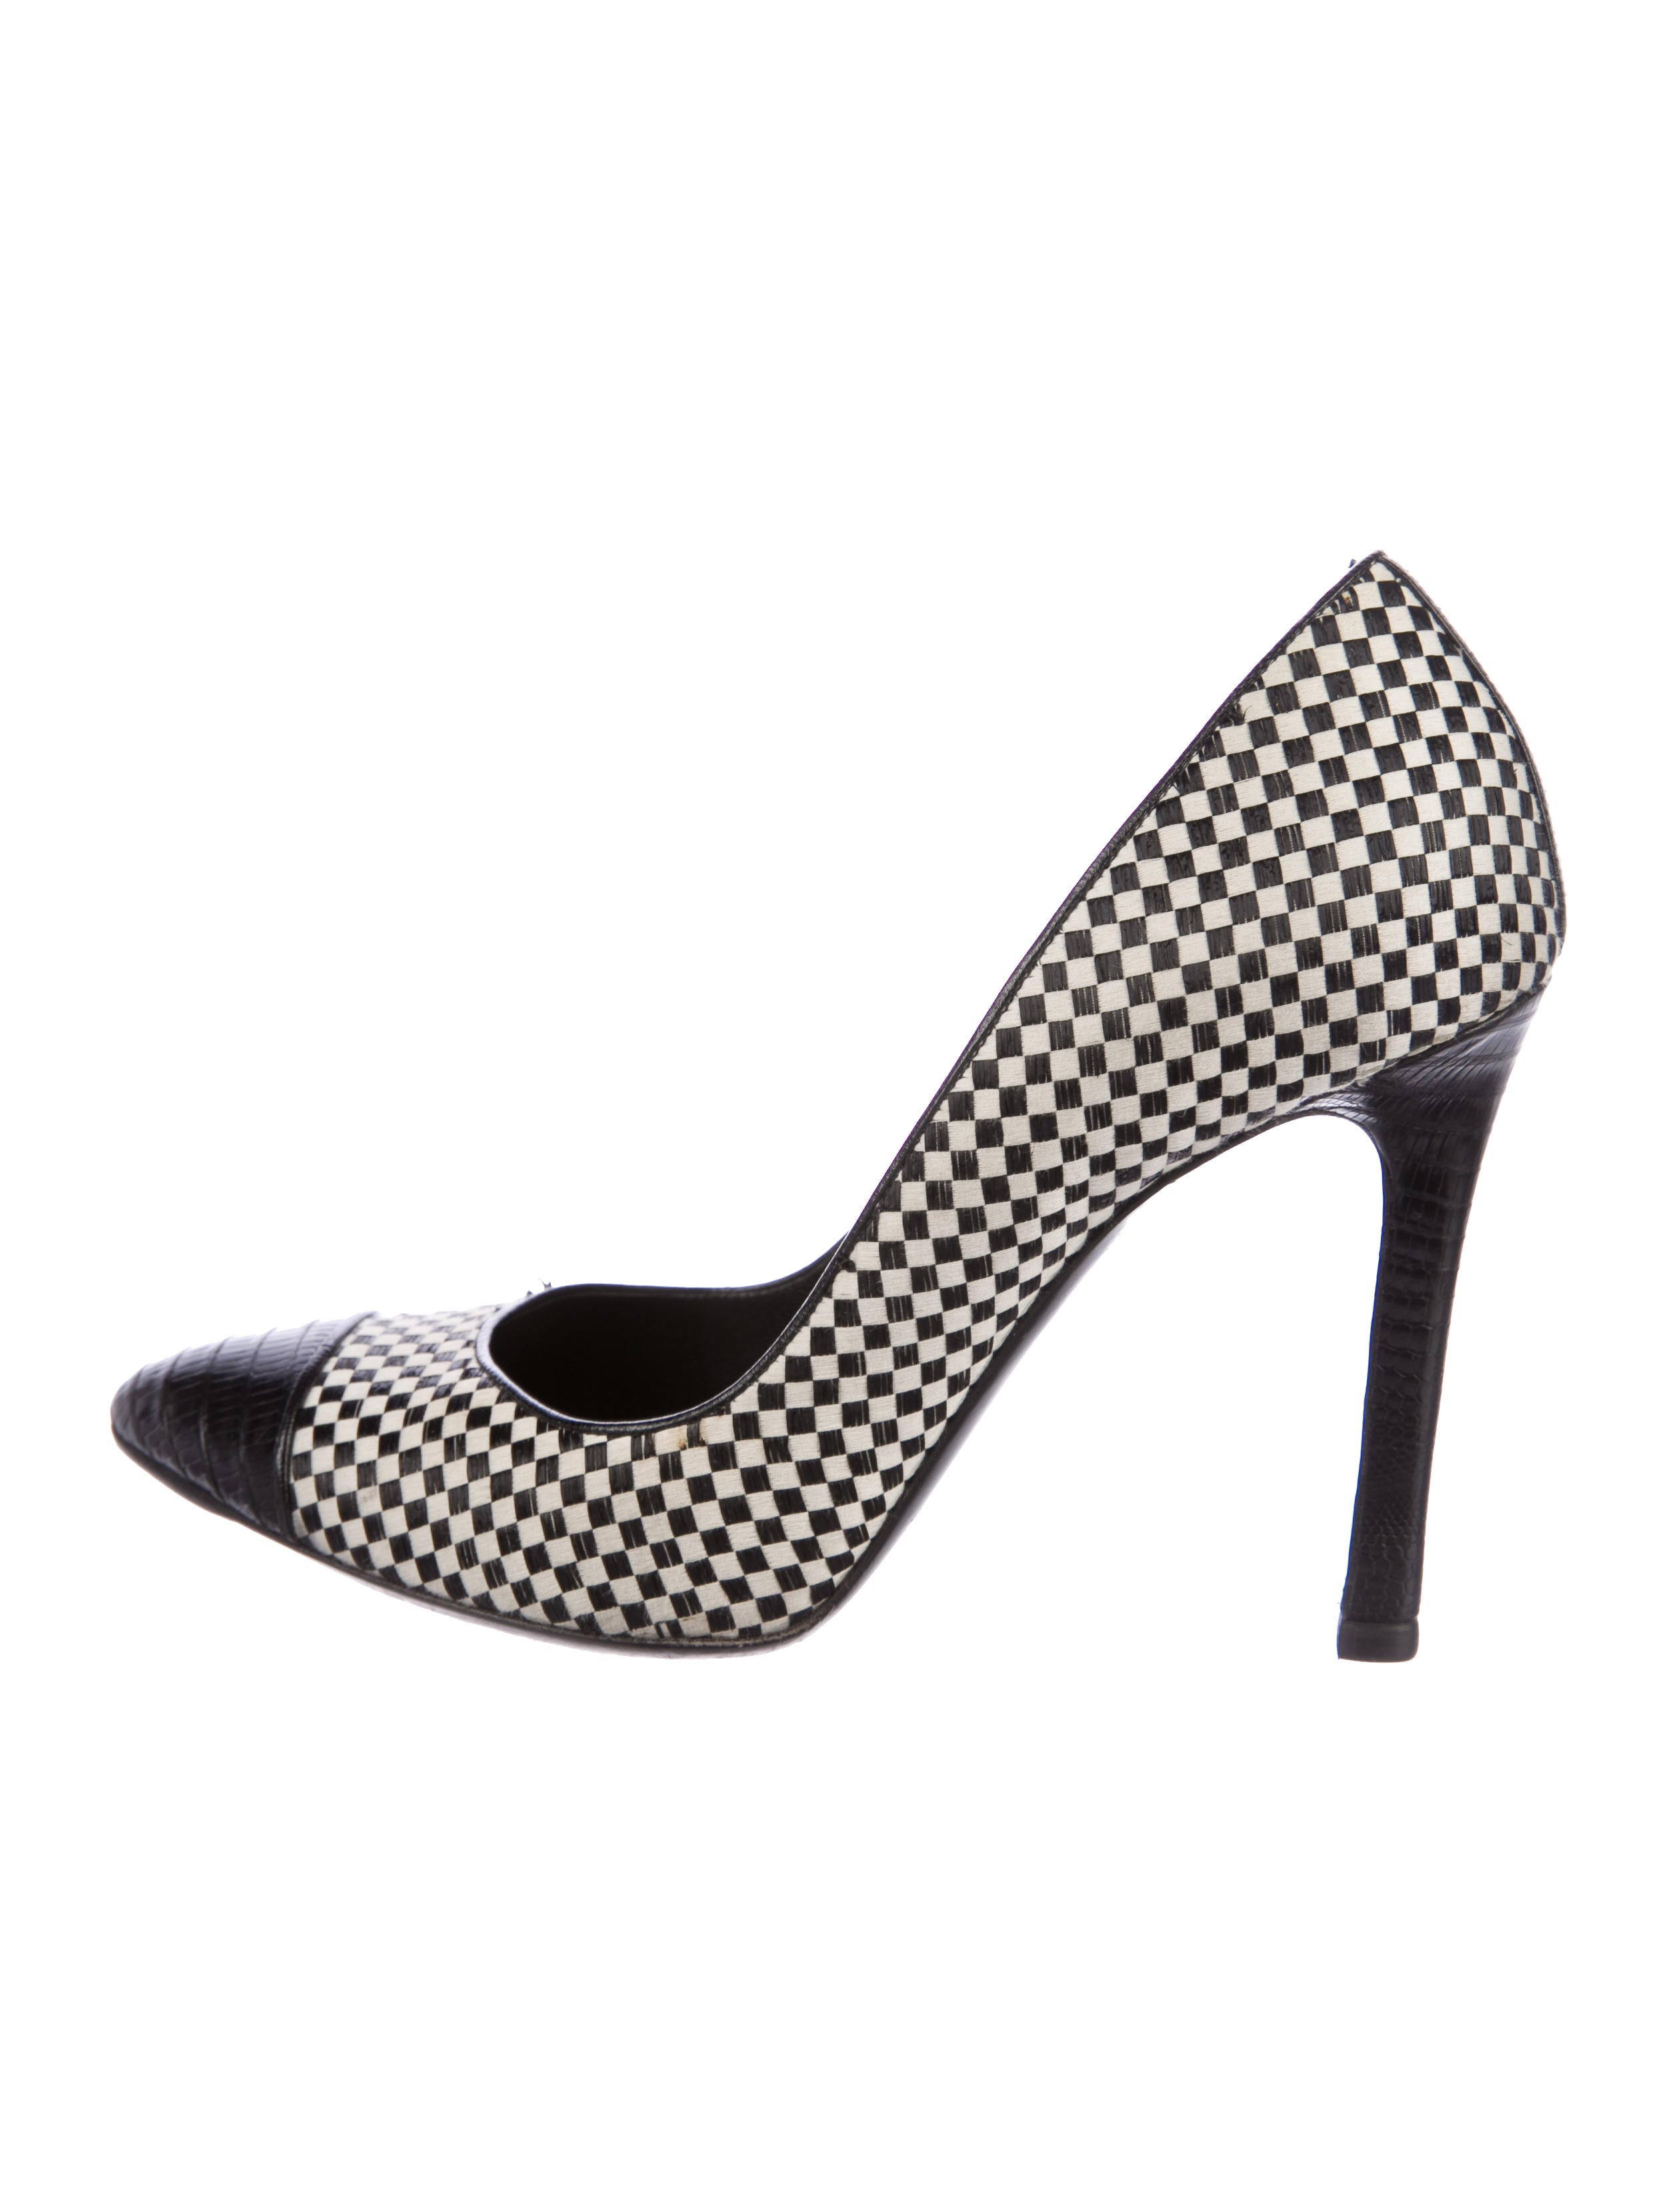 Tom Ford Lizard-Trimmed Cap-Toe Pumps get to buy for sale nrFA3fLxn